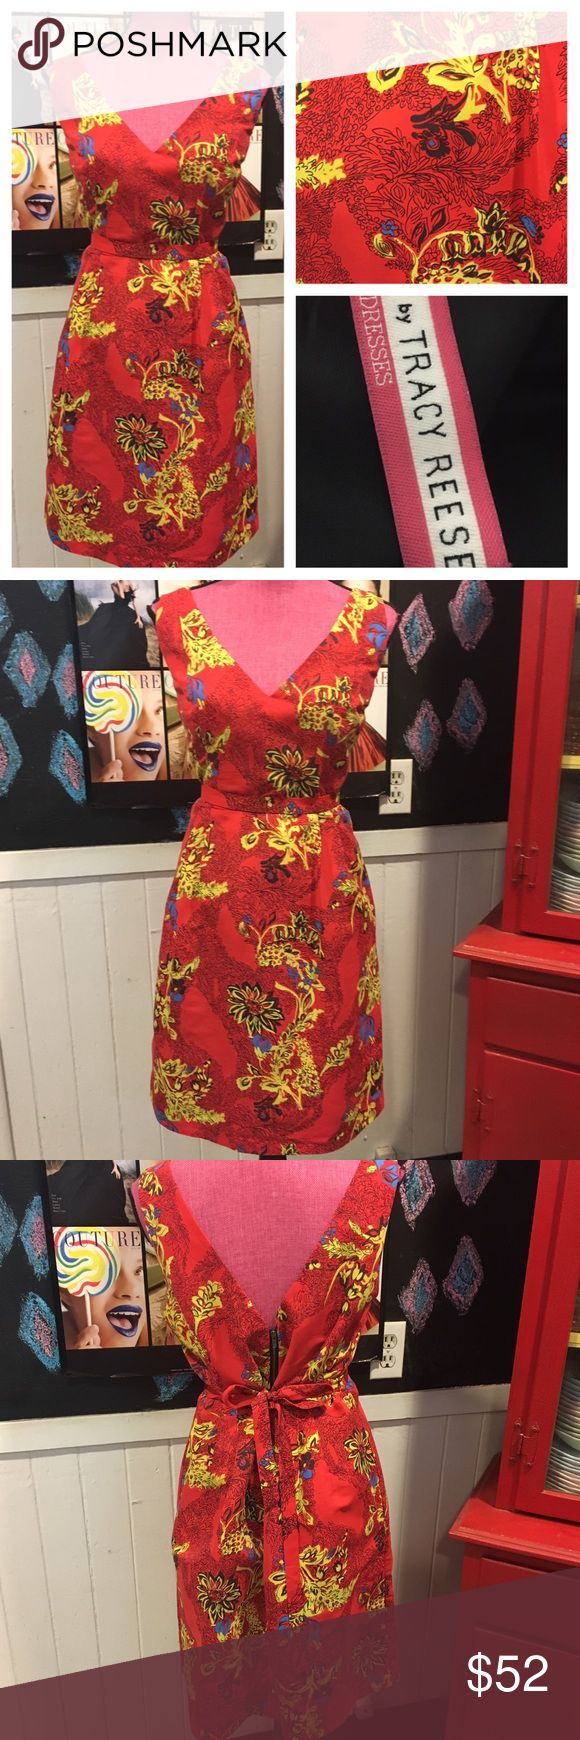 """👀❤TRACY REESE sz12 Asian red DRESS nwot NWOT size 12 Tracy Reese red dress.   So cute has a belt tie.  Chest it 38"""" waist is 34"""".   It's a Asian print mixed with summer🤷🏻♀️ great print is what I'm saying.  😍😍😍💯 Plenty by Tracy Reese Dresses"""